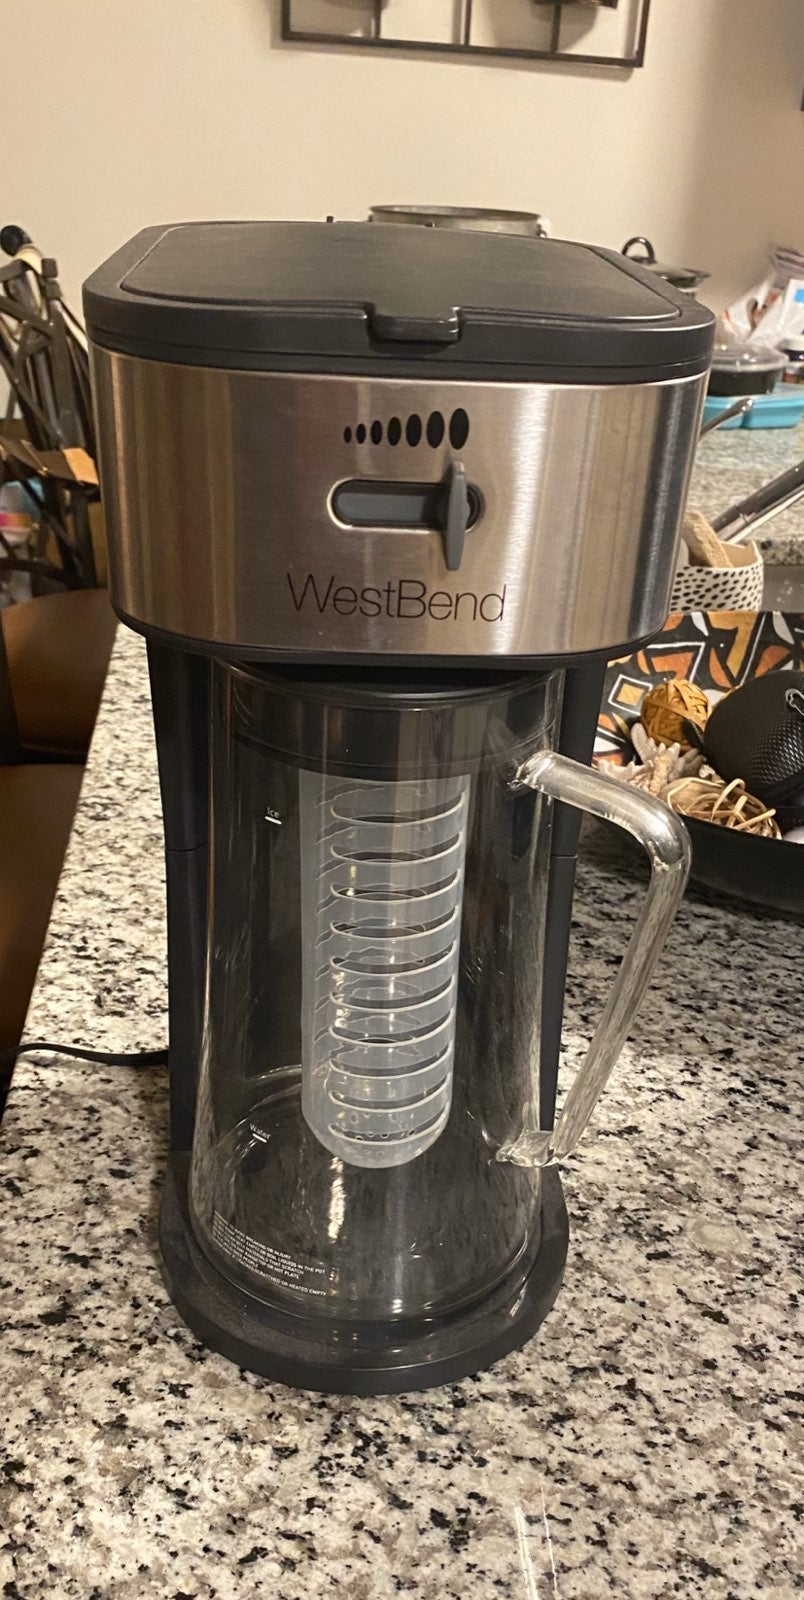 New Westbend iced tea maker / diffuser